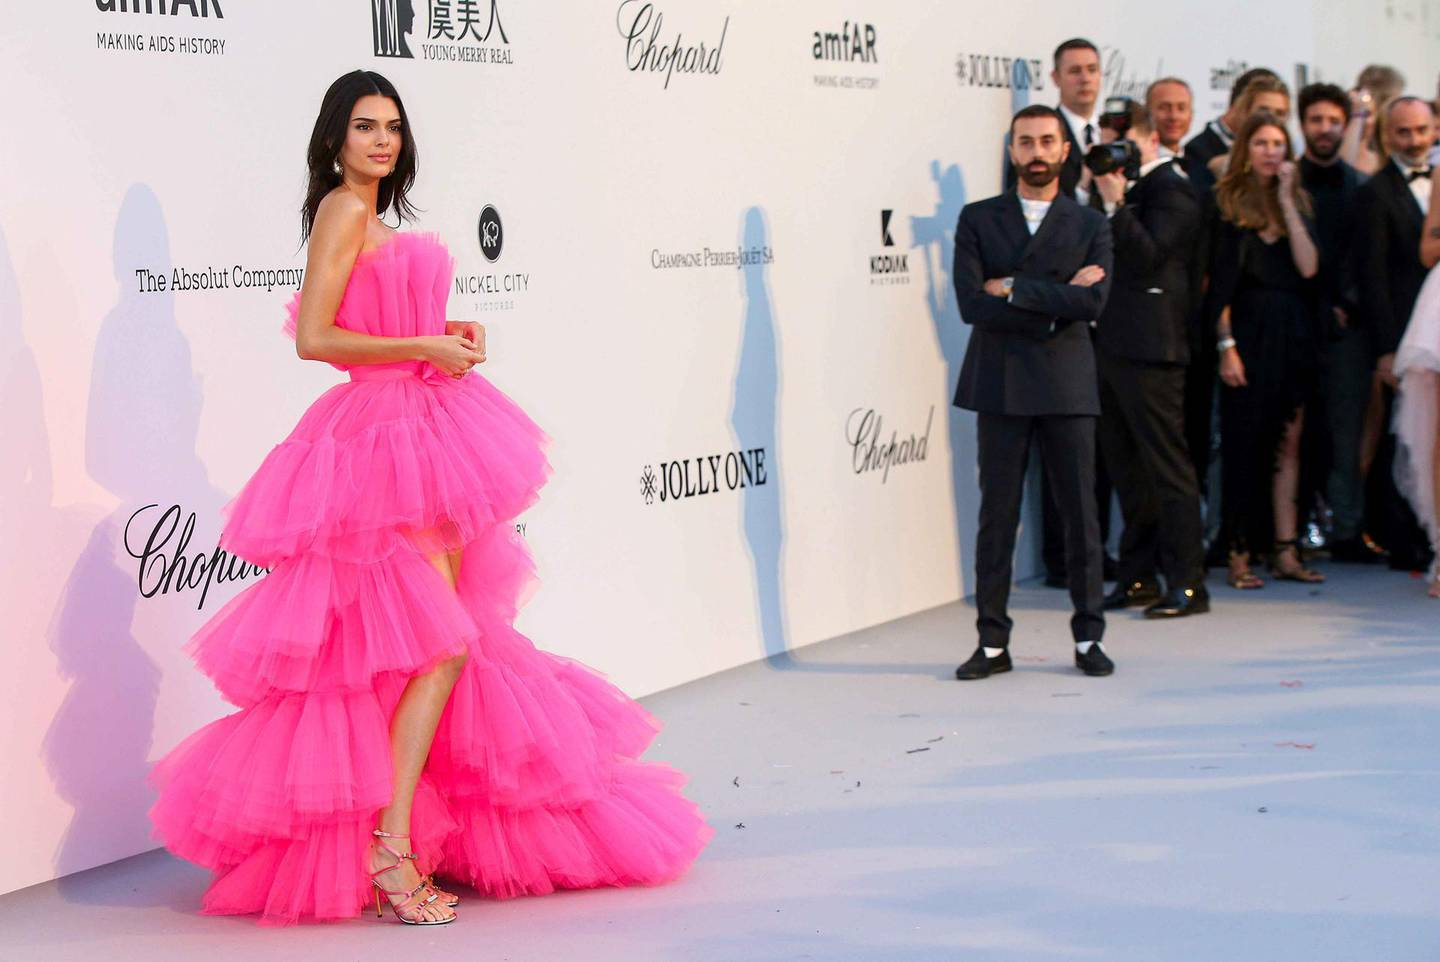 Mandatory Credit: Photo by People Picture/Willi Schneider/Shutterstock (10247149am) Kendall Jenner amfAR's 26th Cinema Against AIDS Gala, Arrivals, 72nd Cannes Film Festival, France - 23 May 2019 Wearing Giambattista Valli x H&M